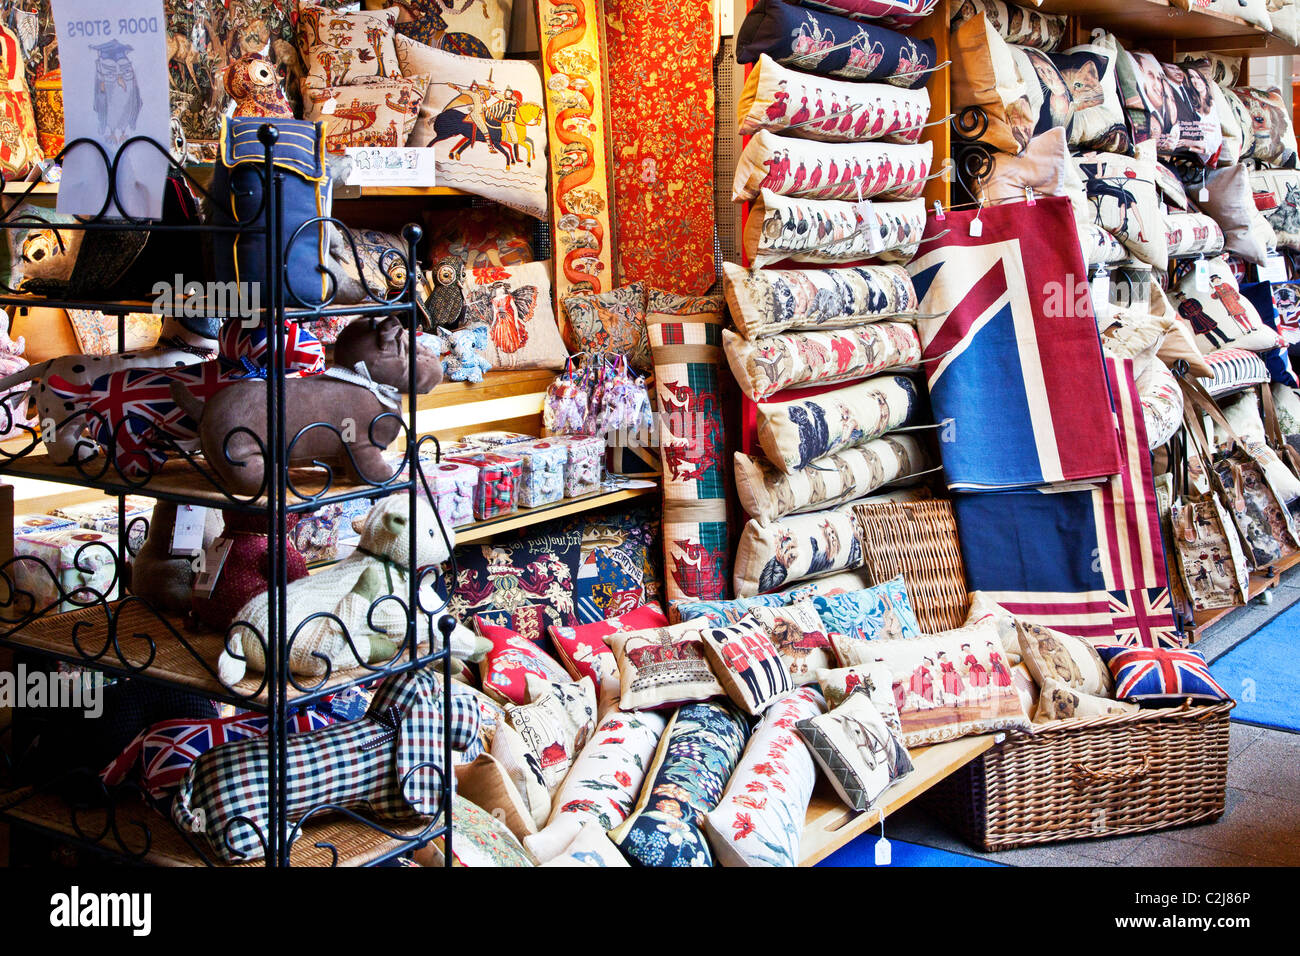 Display of upmarket souvenirs,memorabilia and gifts on an indoor market stall in Windsor, Berkshire, England, UK - Stock Image